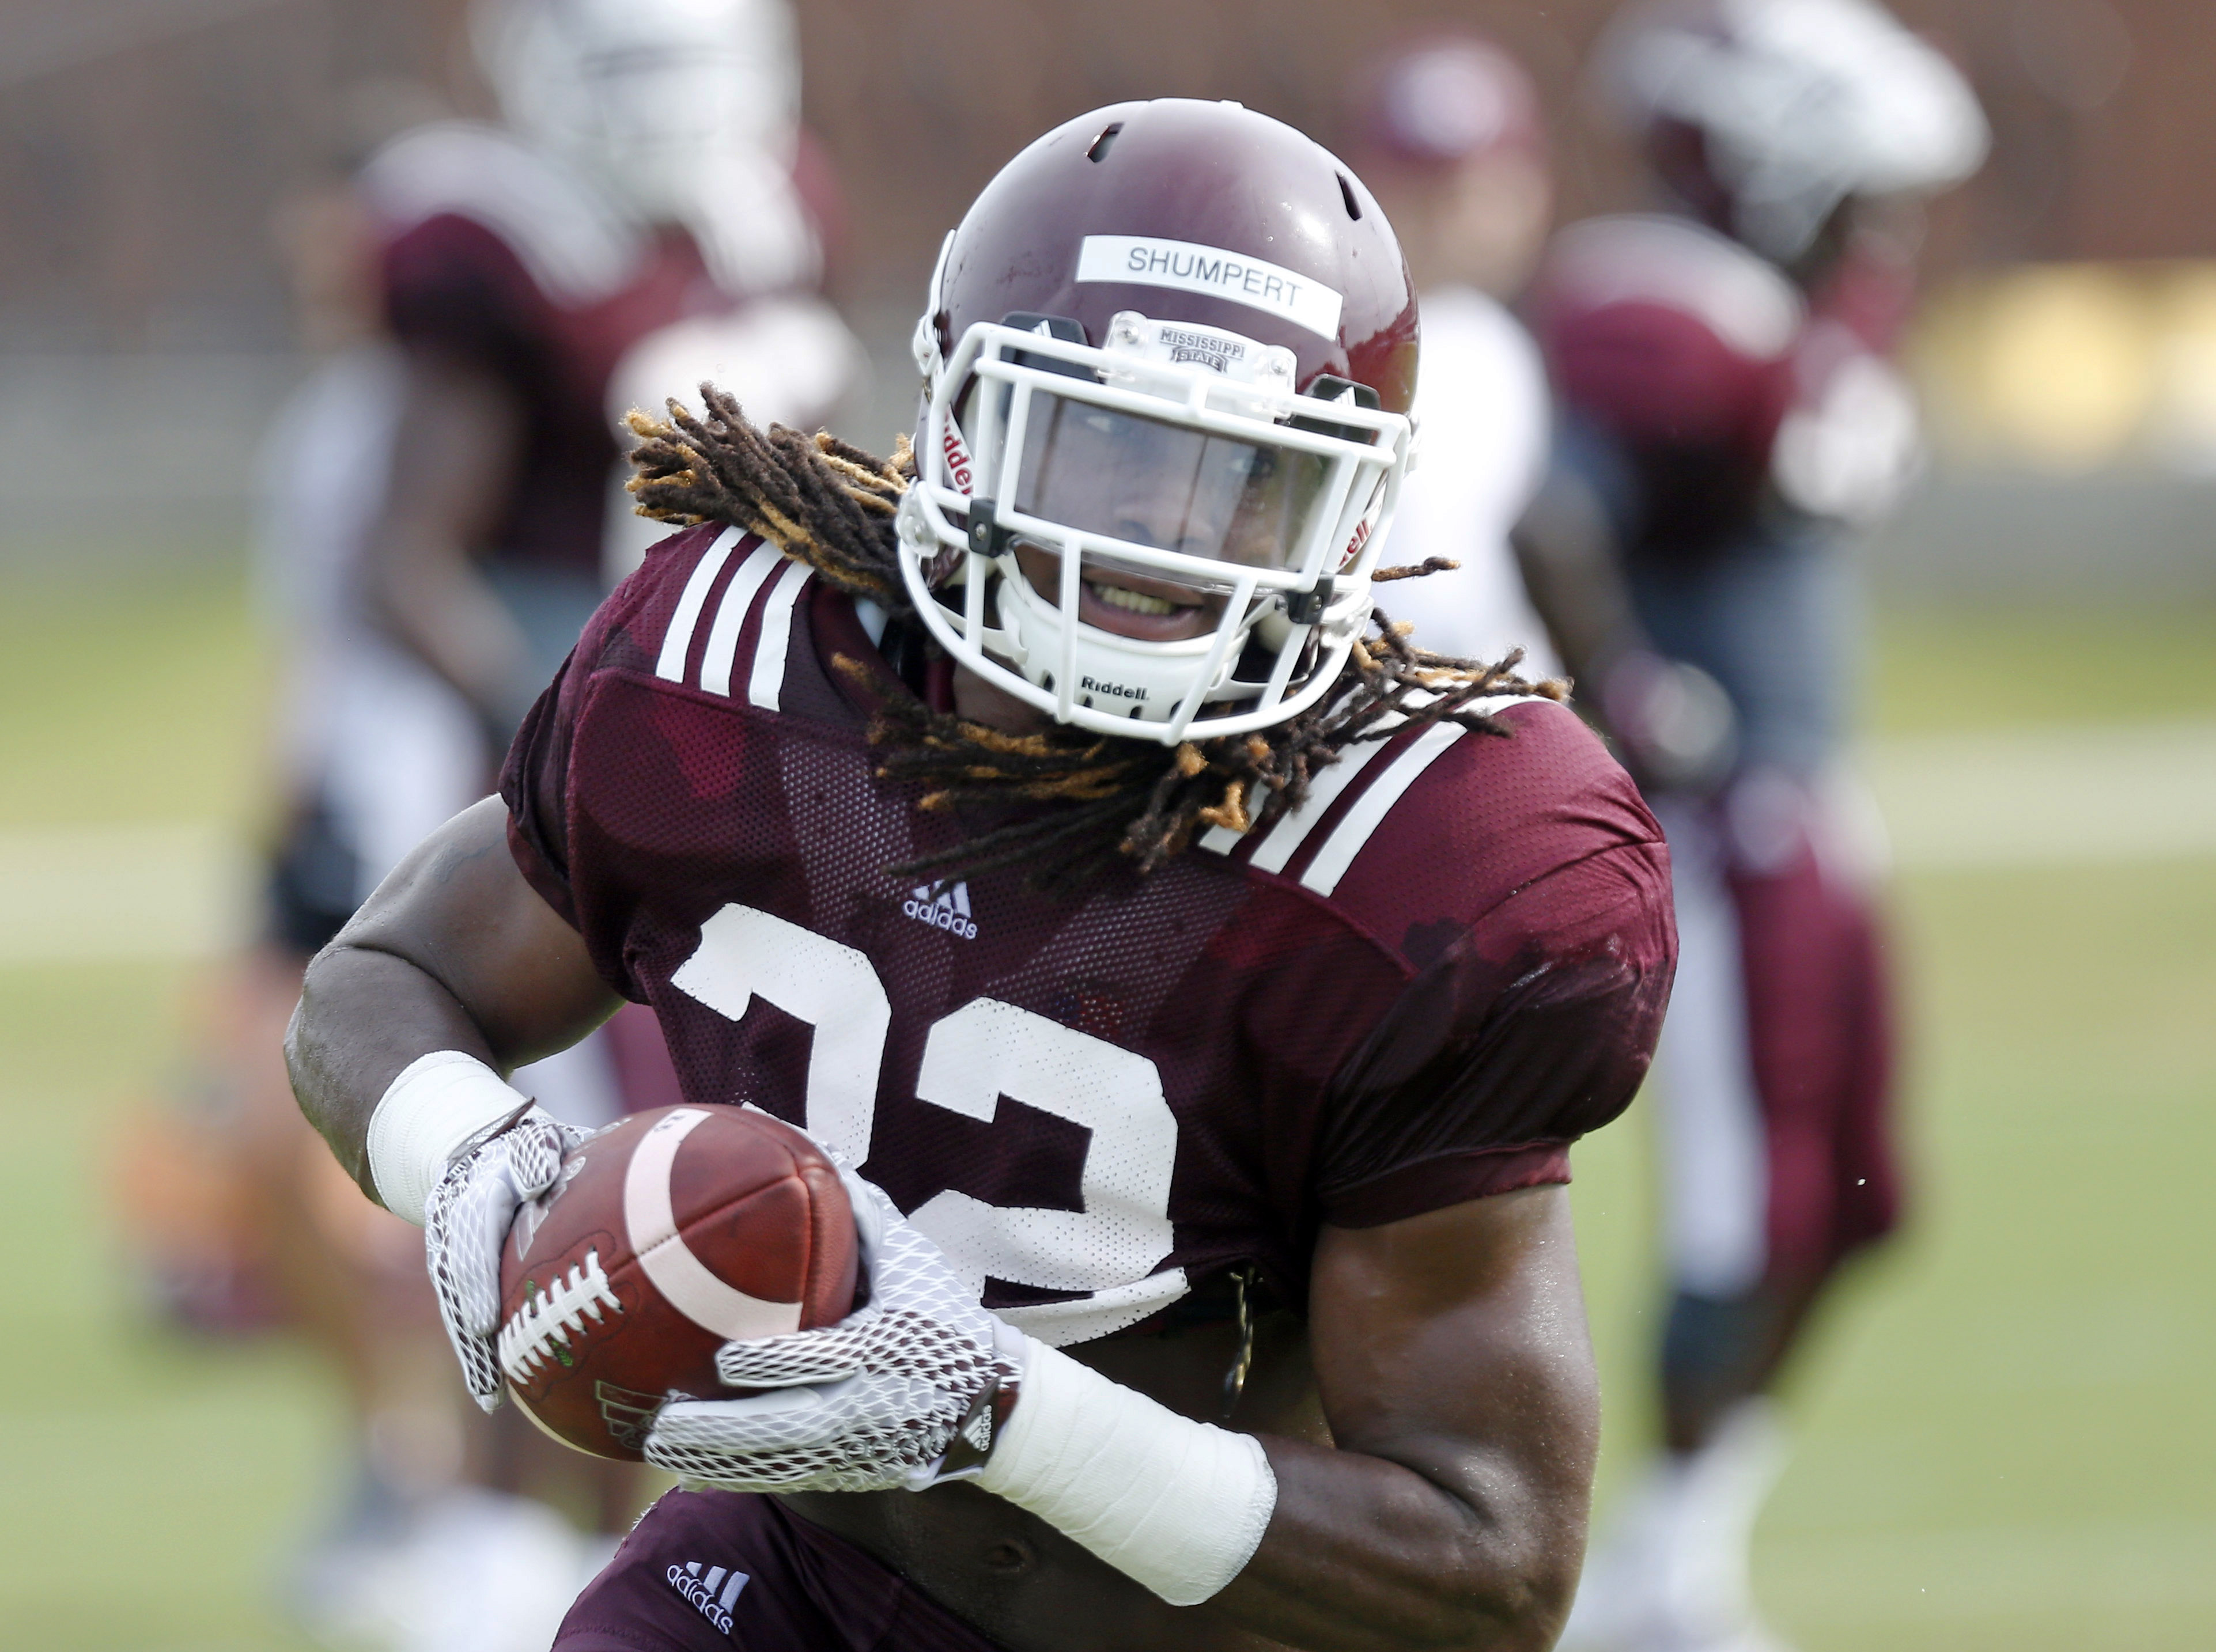 FILE - In this Aug. 7, 2015, file photo, Mississippi State running back Ashton Shumpert (32) runs during an NCAA college football practice in Starkville, Miss. (AP Photo/Rogelio V. Solis, File)